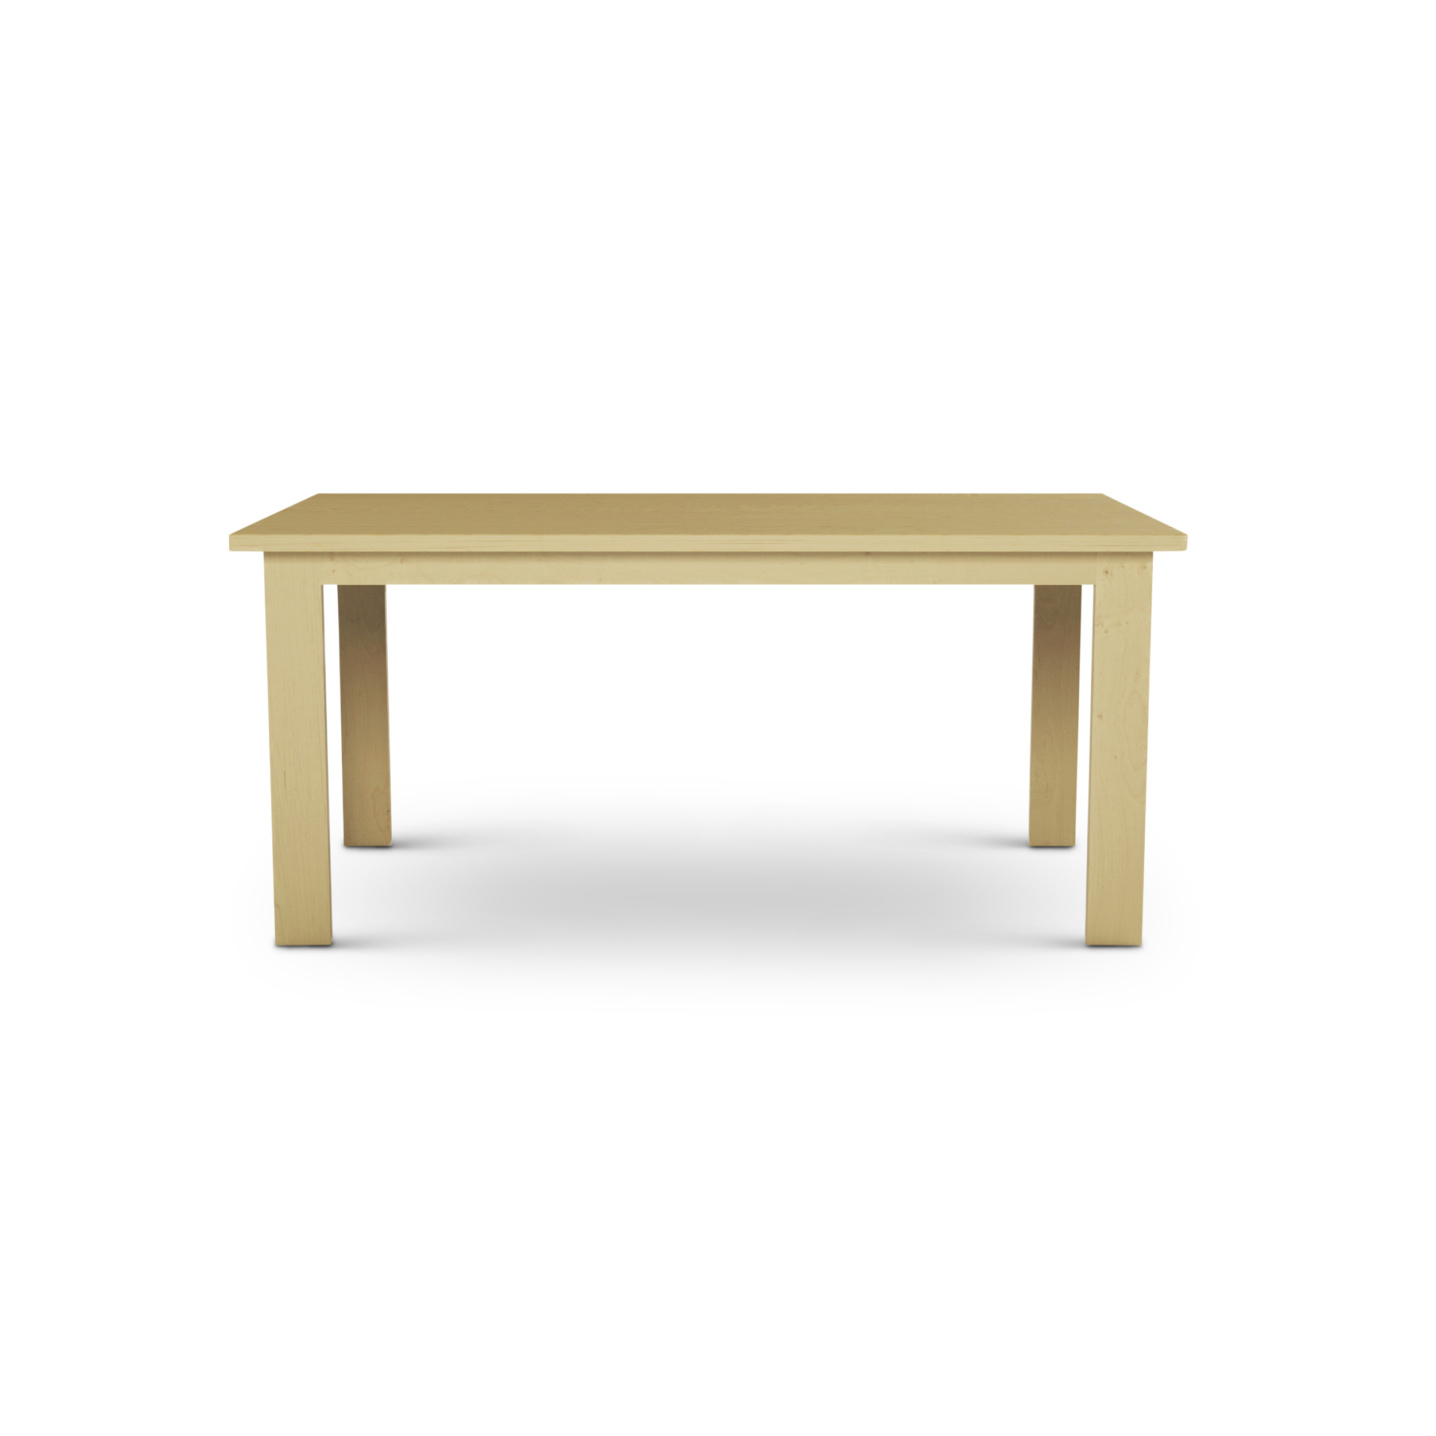 Domestically made solid maple table